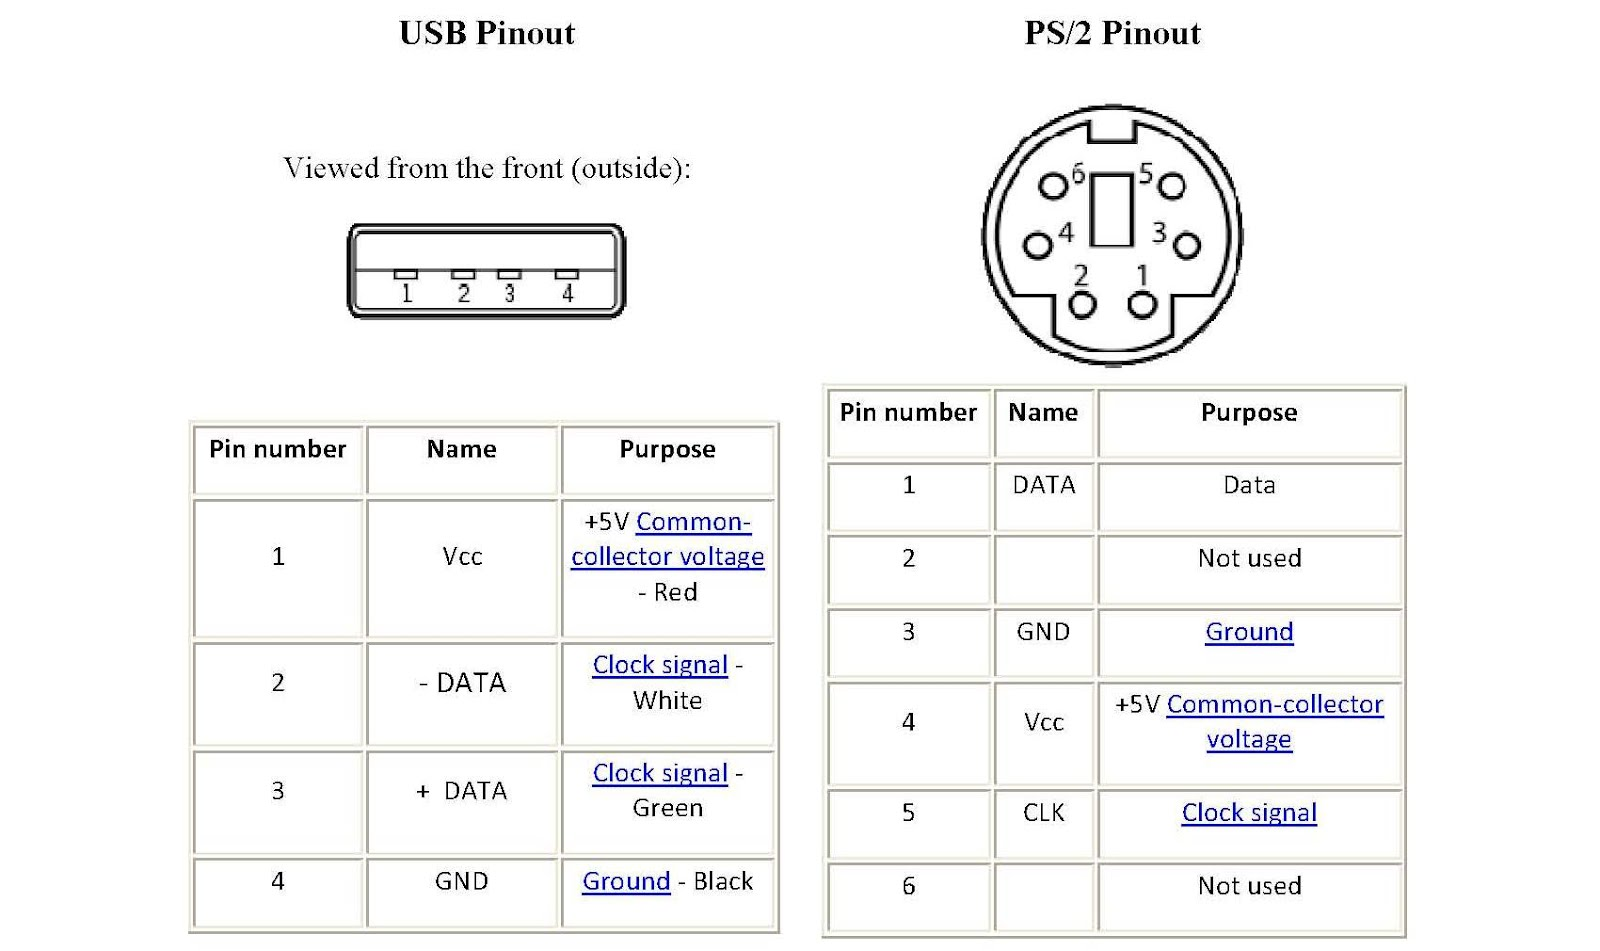 Ps2 To Usb Wiring - Wiring Diagrams Value Usb Ps Wiring Diagram on hp ps2 to usb wire diagram, convert ps2 to usb diagram, ps2 parts diagram, ps2 controller diagram, ps2 fuse diagram, ps2 motherboard diagram, ps 2 keyboard diagram, ps2 plug diagram, ps2 remote control, ps2 schematic diagram, ps2 pump diagram,